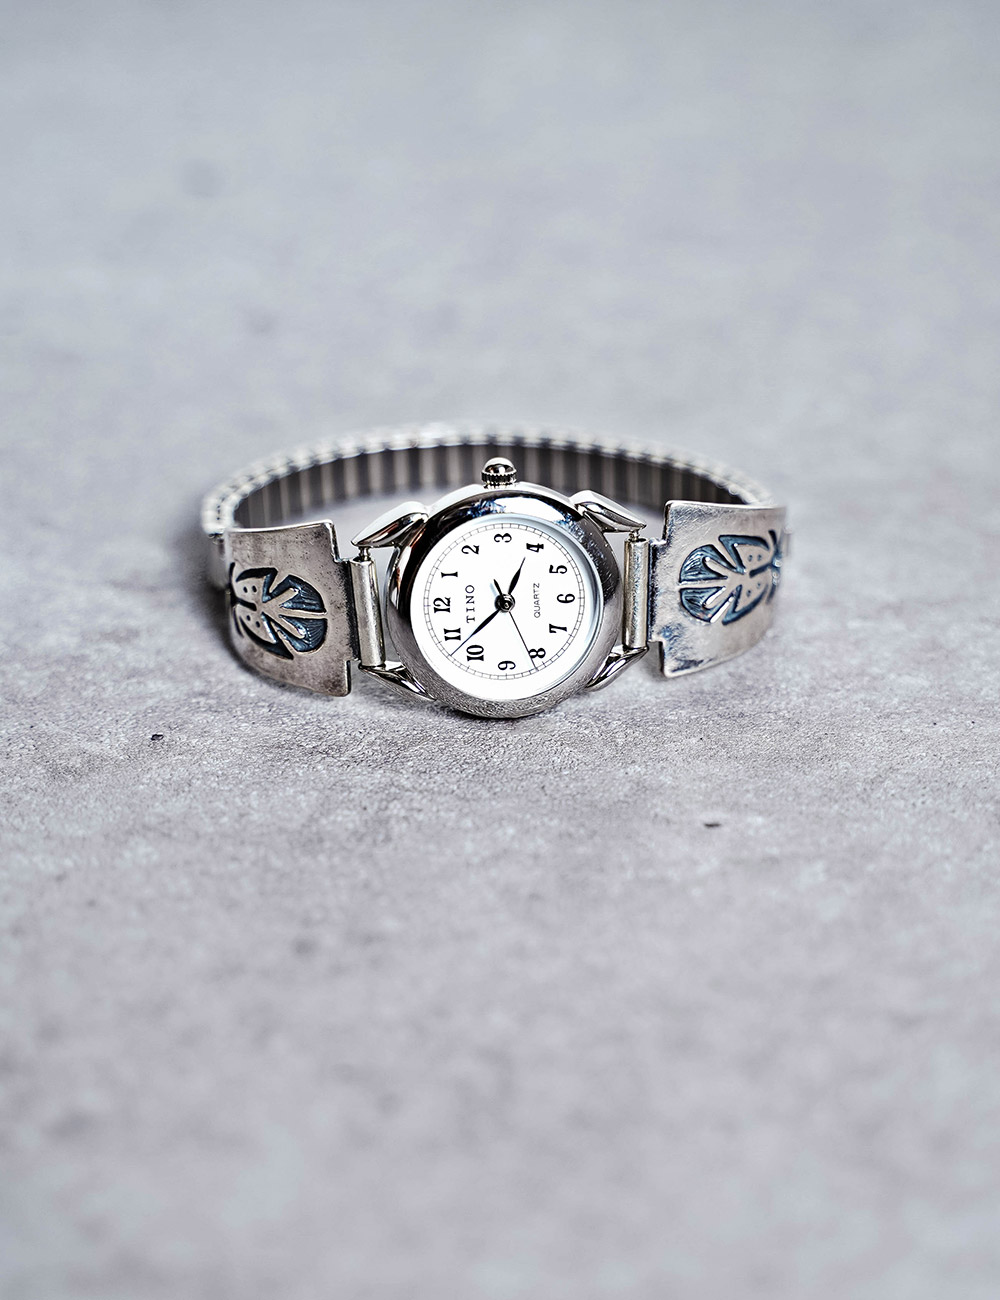 NATIVE AMERICAN JEWELRY : VINTAGE SILVER WRIST WATCH